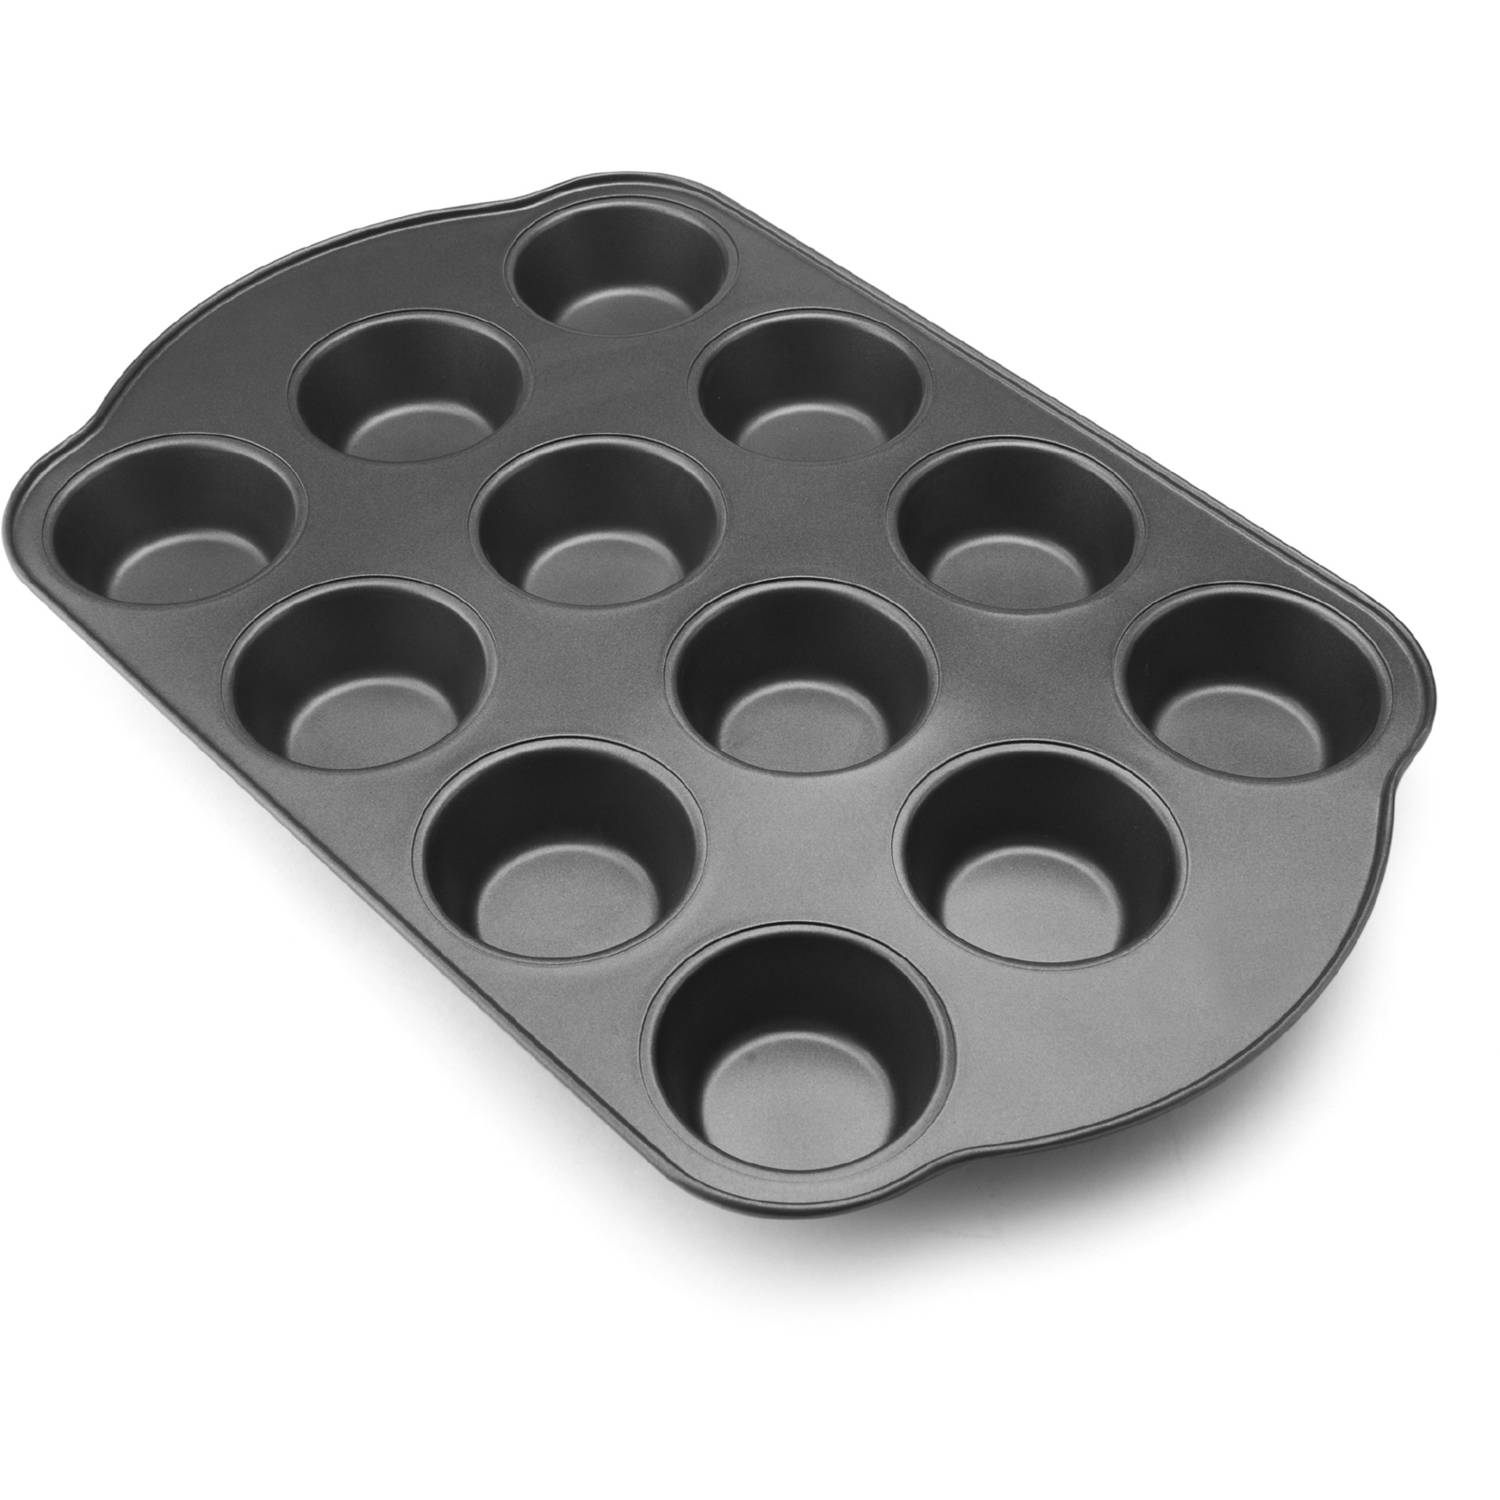 Baker's Advantage Muffin Pan, 12-Cup